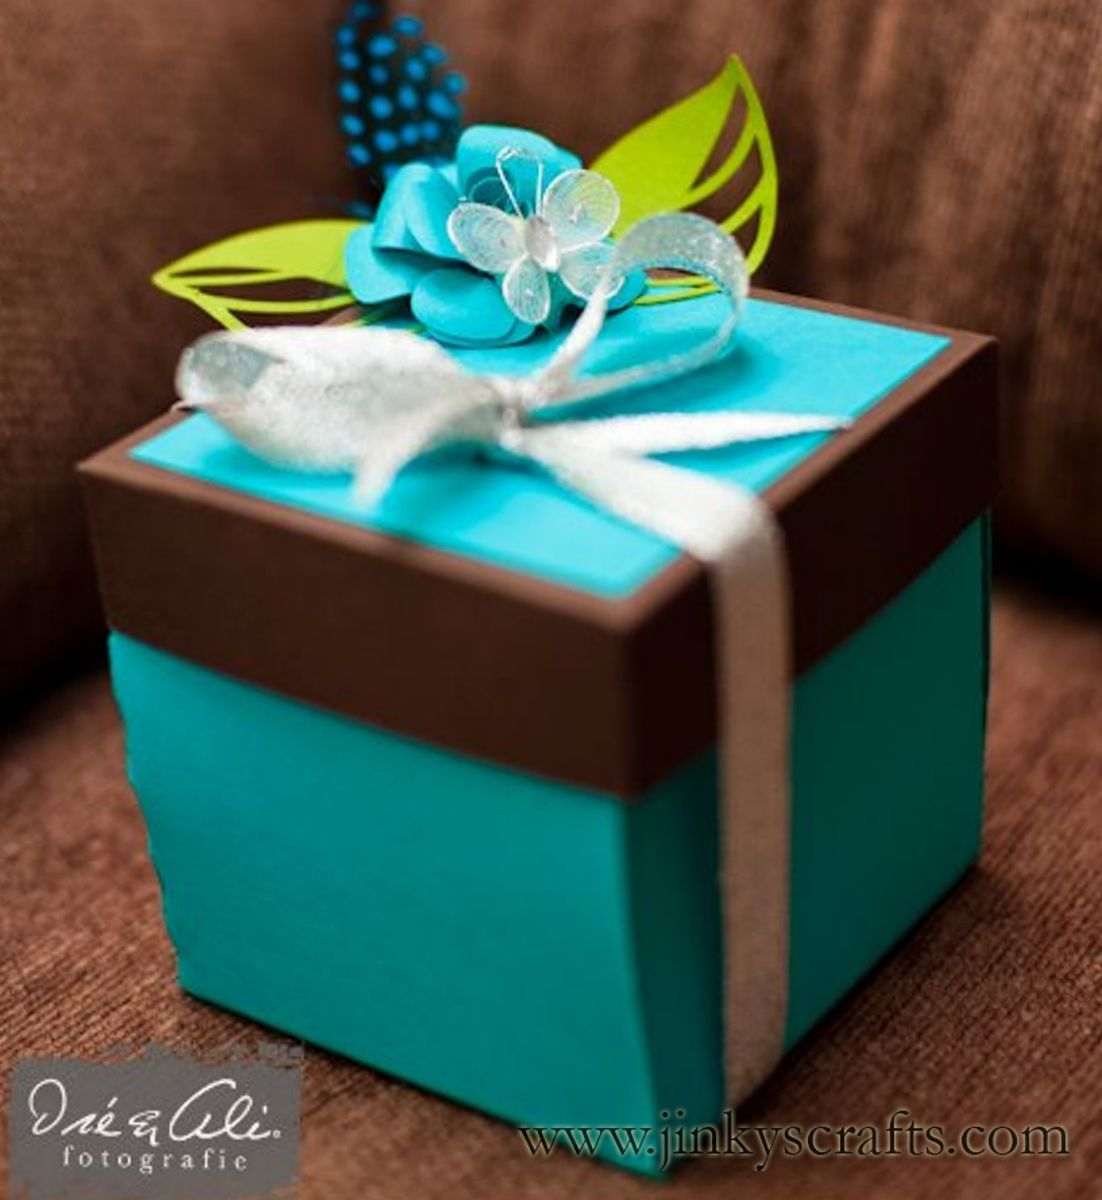 colore turchese | Jinky's Crafts & Designs: Turquoise Blue & Chocolate Brown Color Combo ...